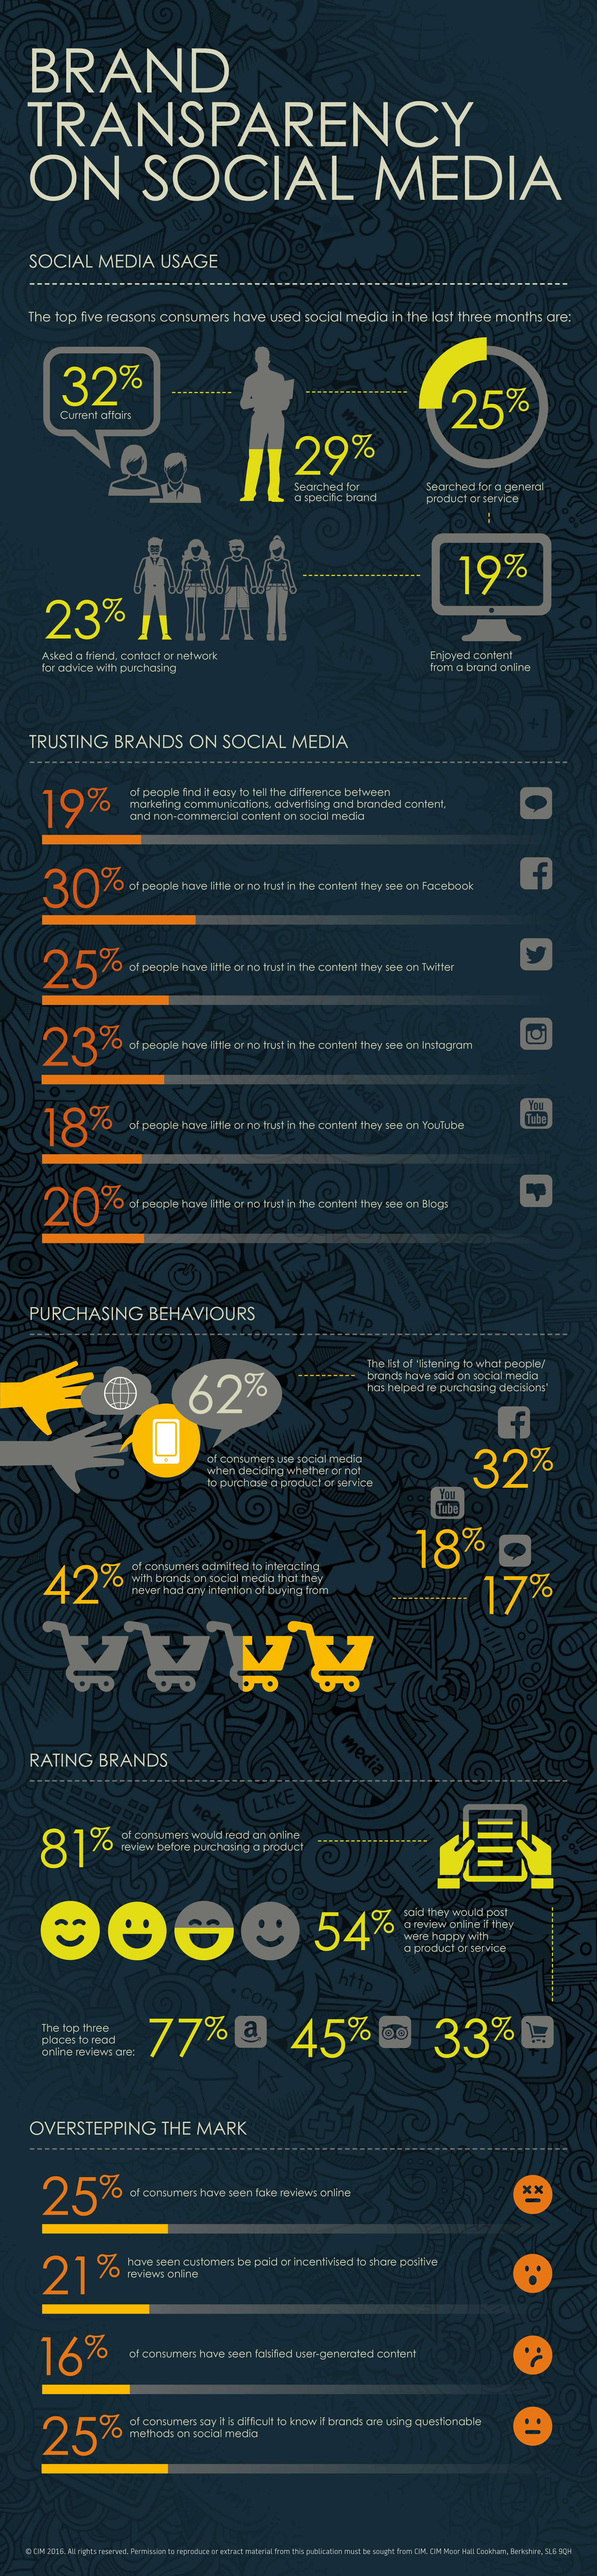 brand_transparency_on_social_media_long_infographic